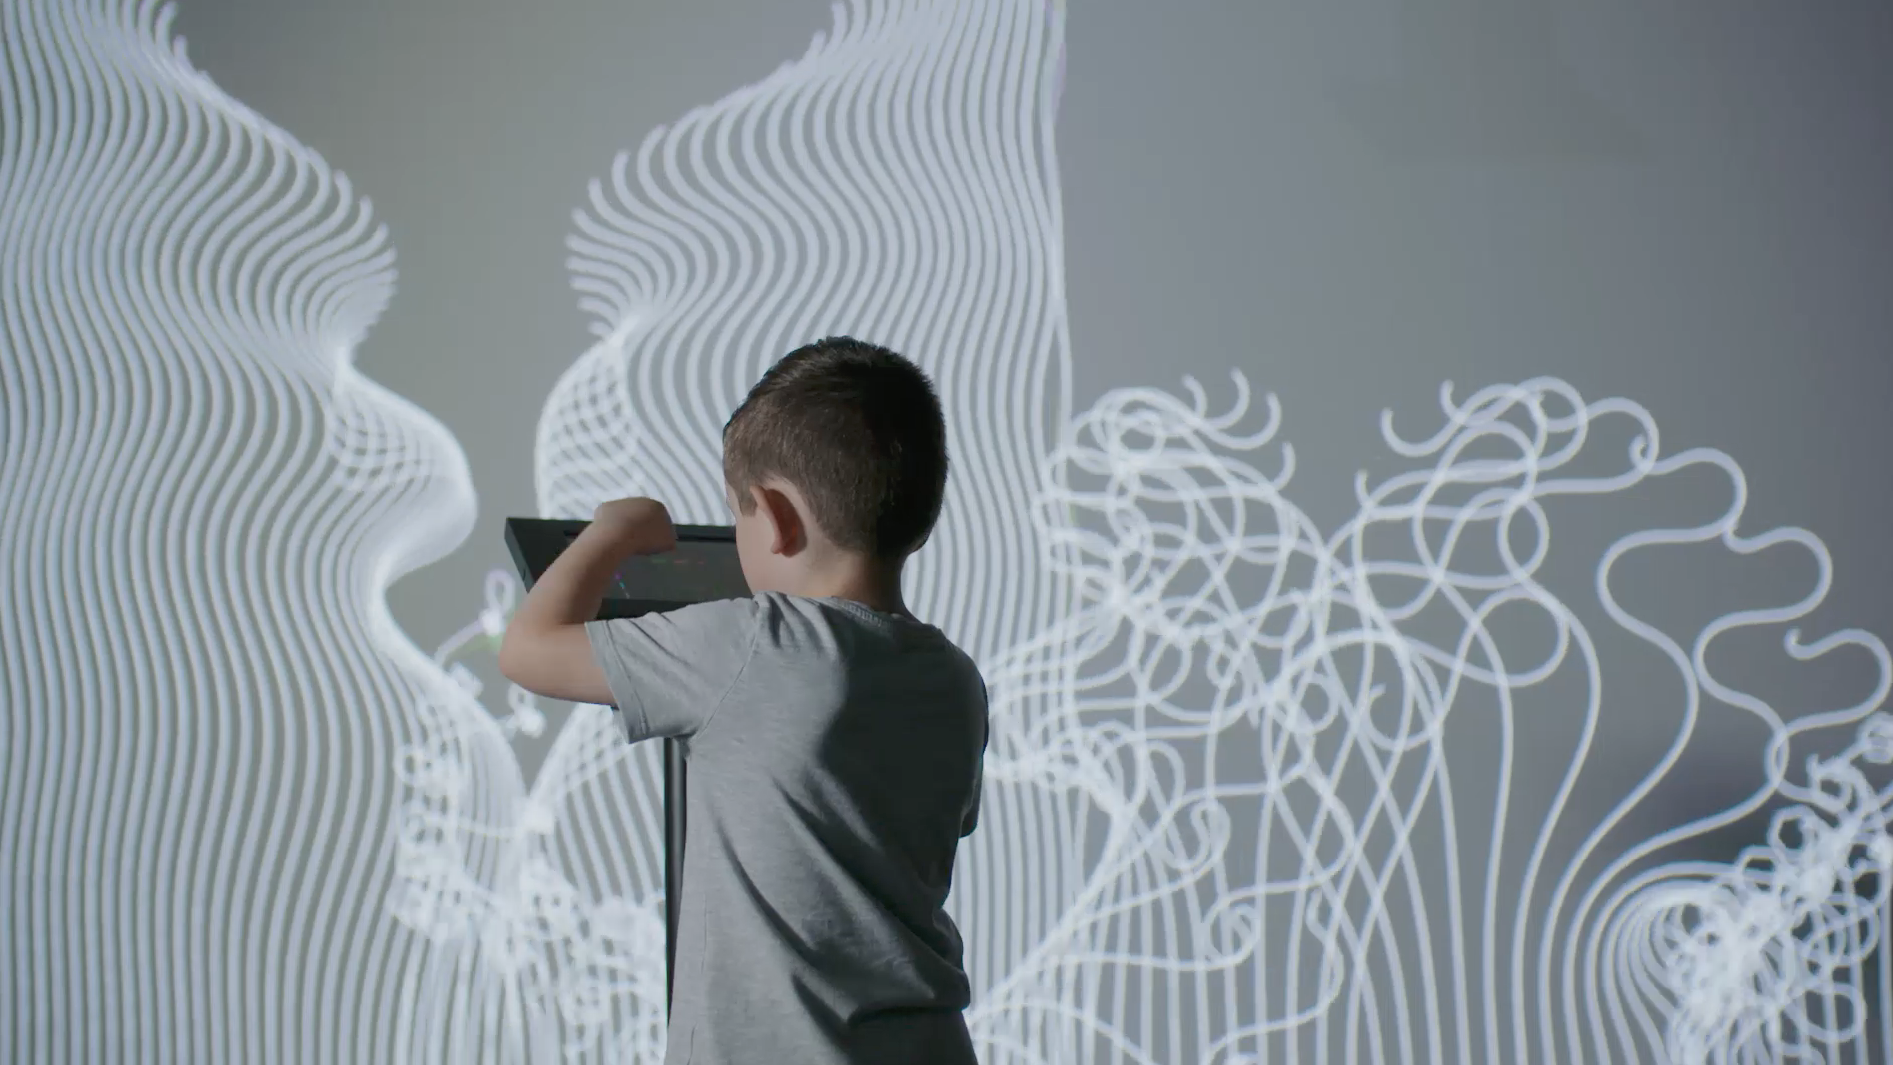 Event Projection: Digital Art Exhibition at national children's museum